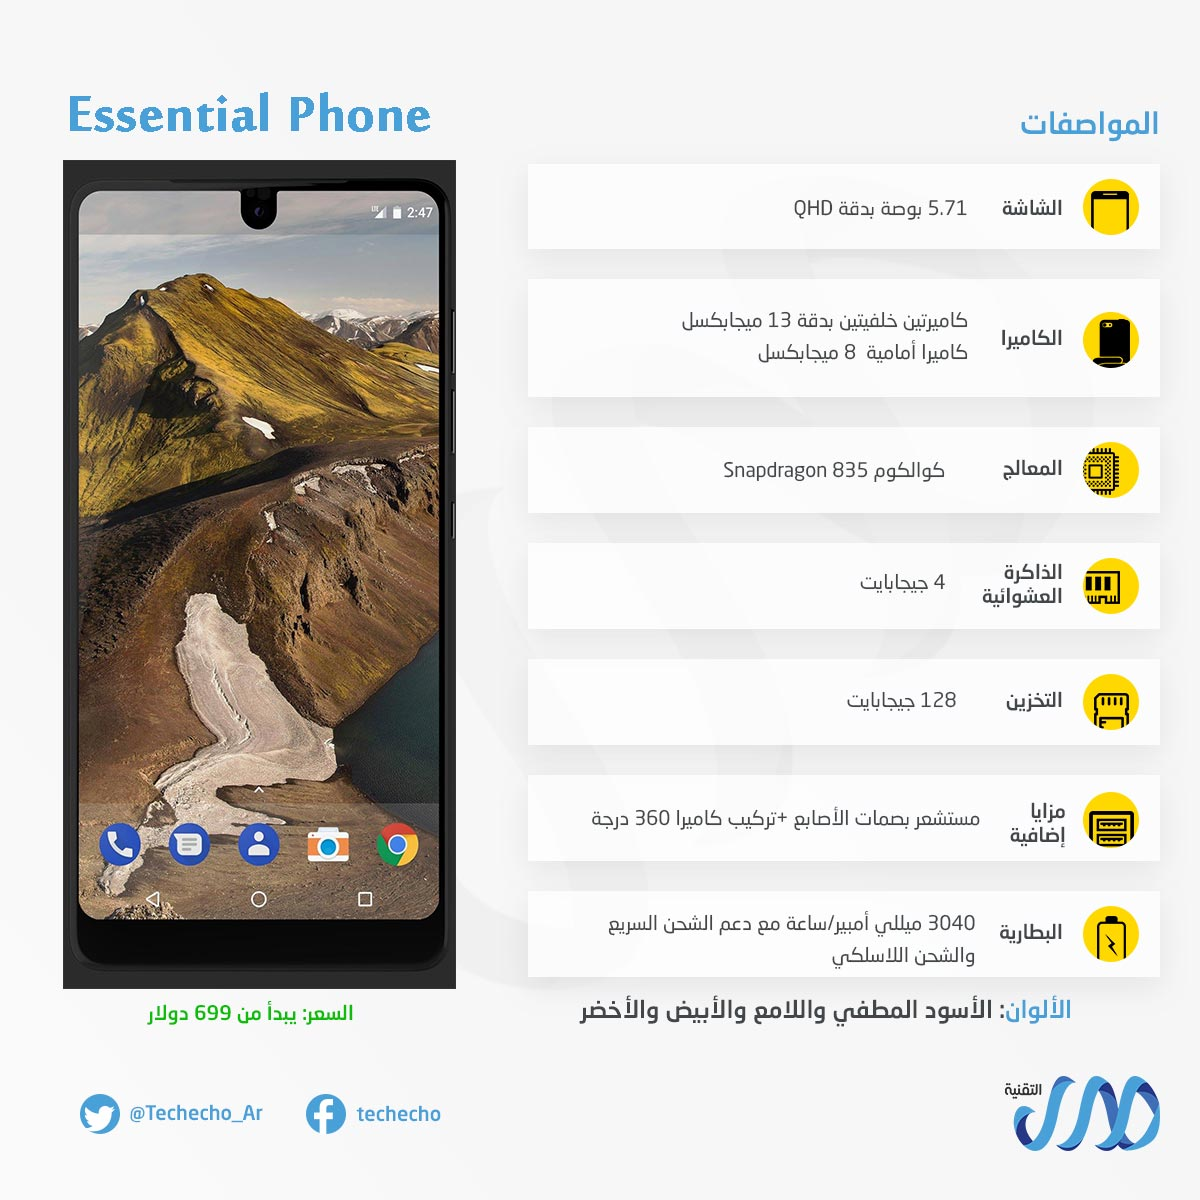 مواصفات Essential Phone